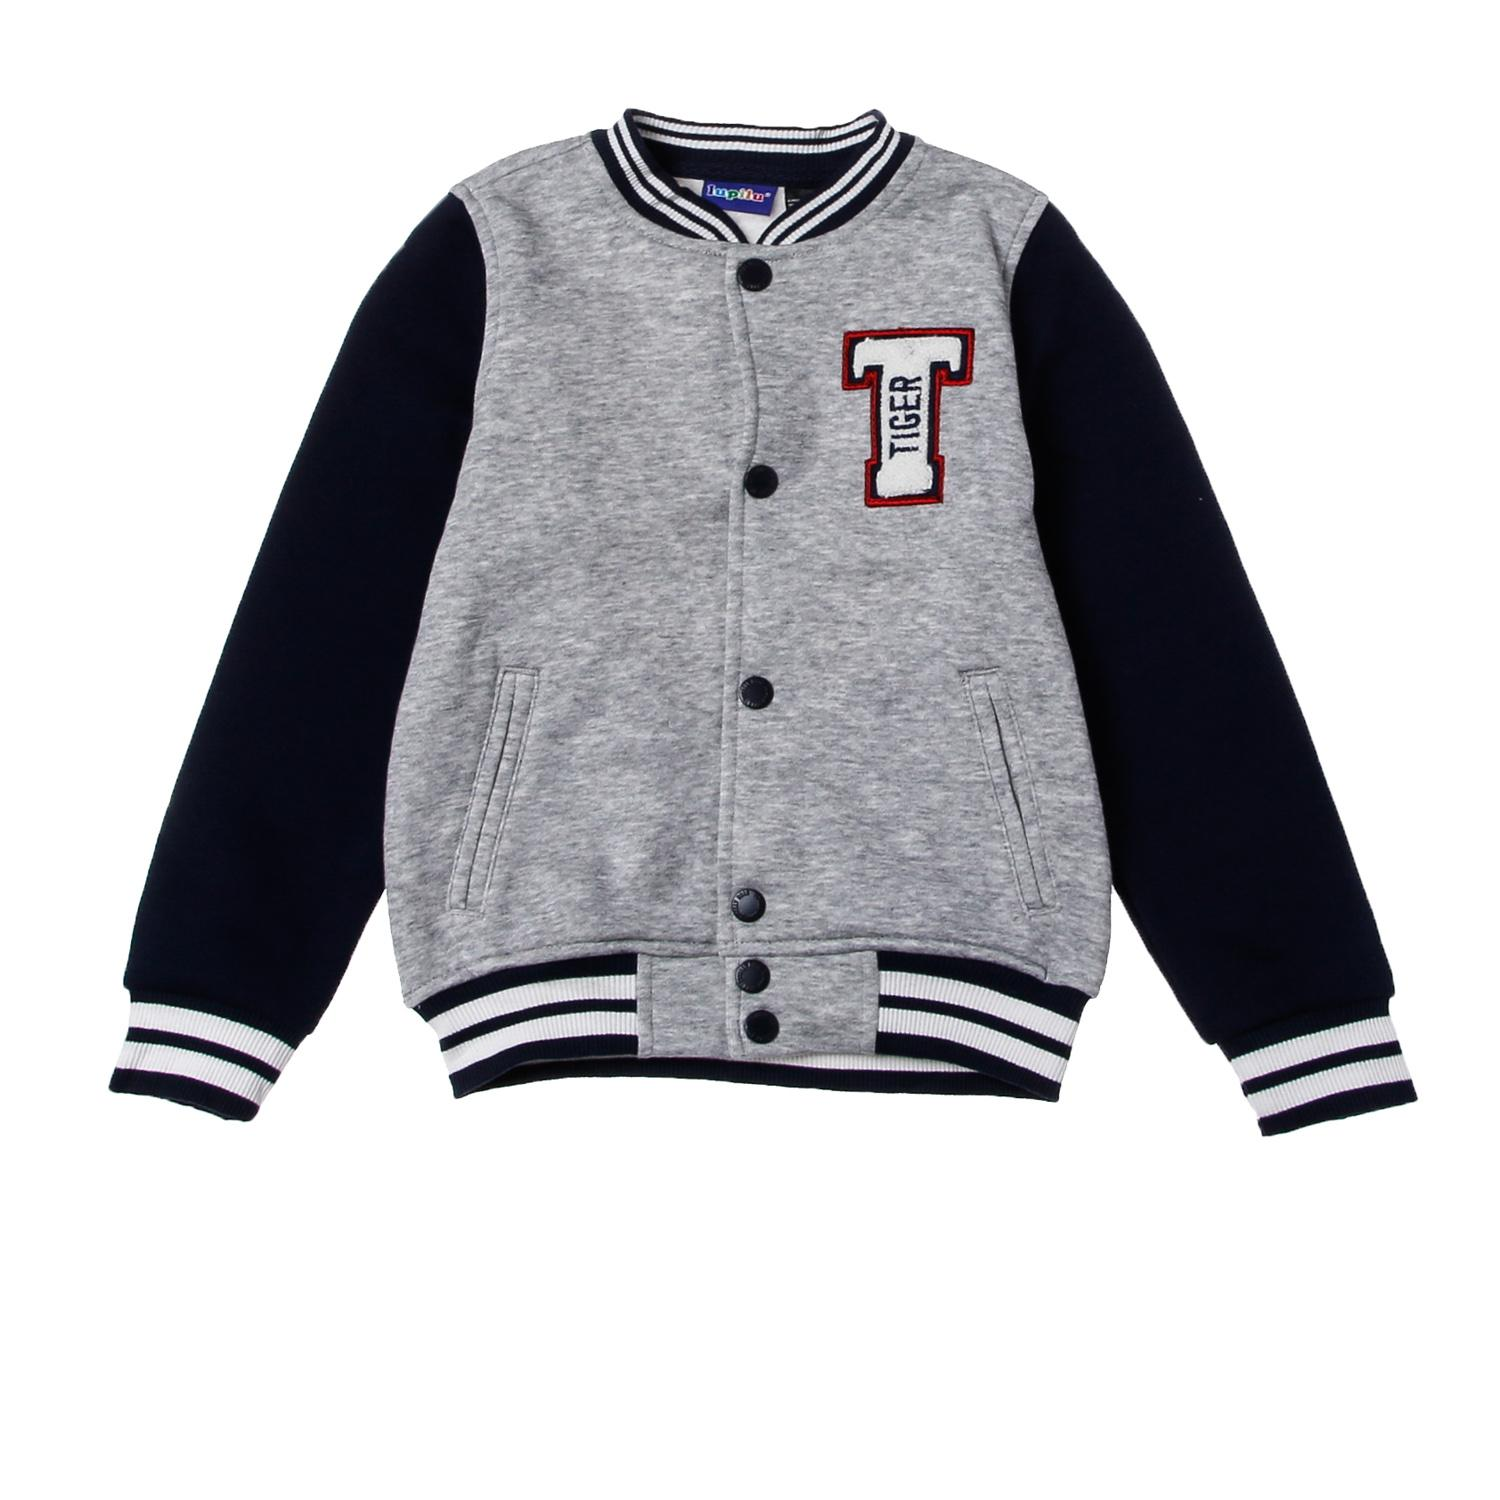 Bgs Toddler Boys T Jacket In Gray By The Sm Store.